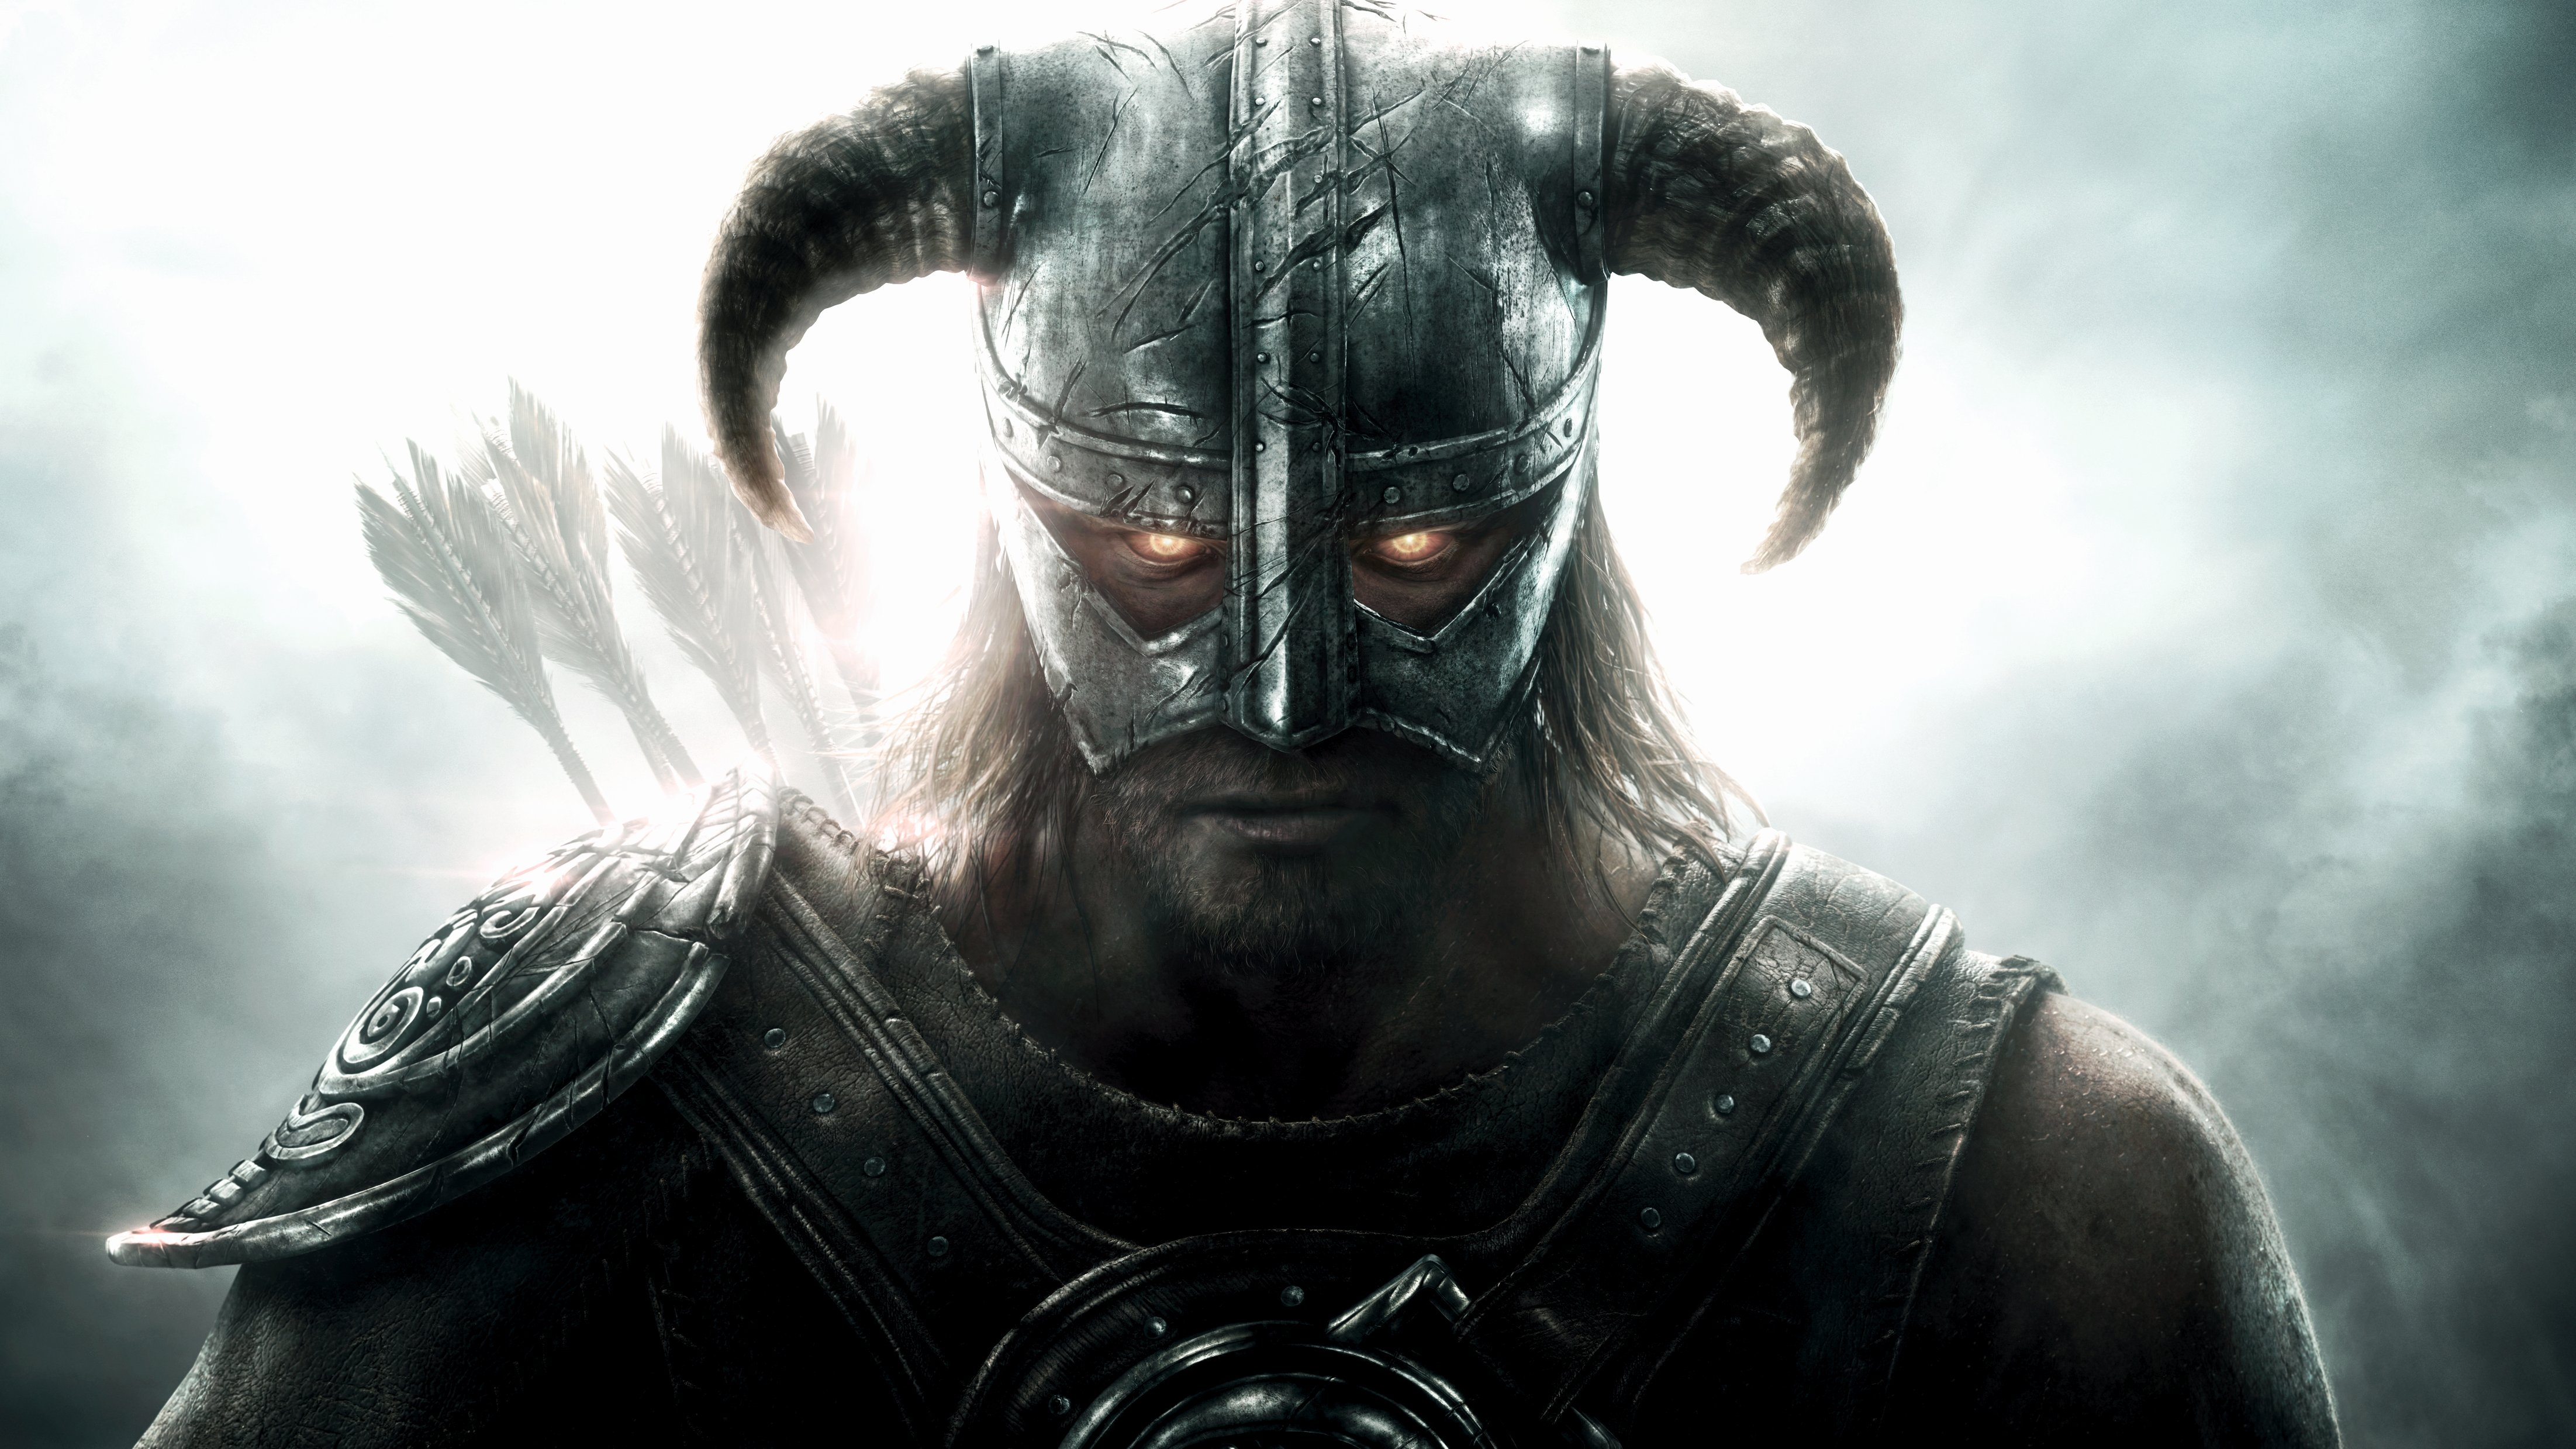 Skyrim Special Edition's audio is noticeably worse than the original's